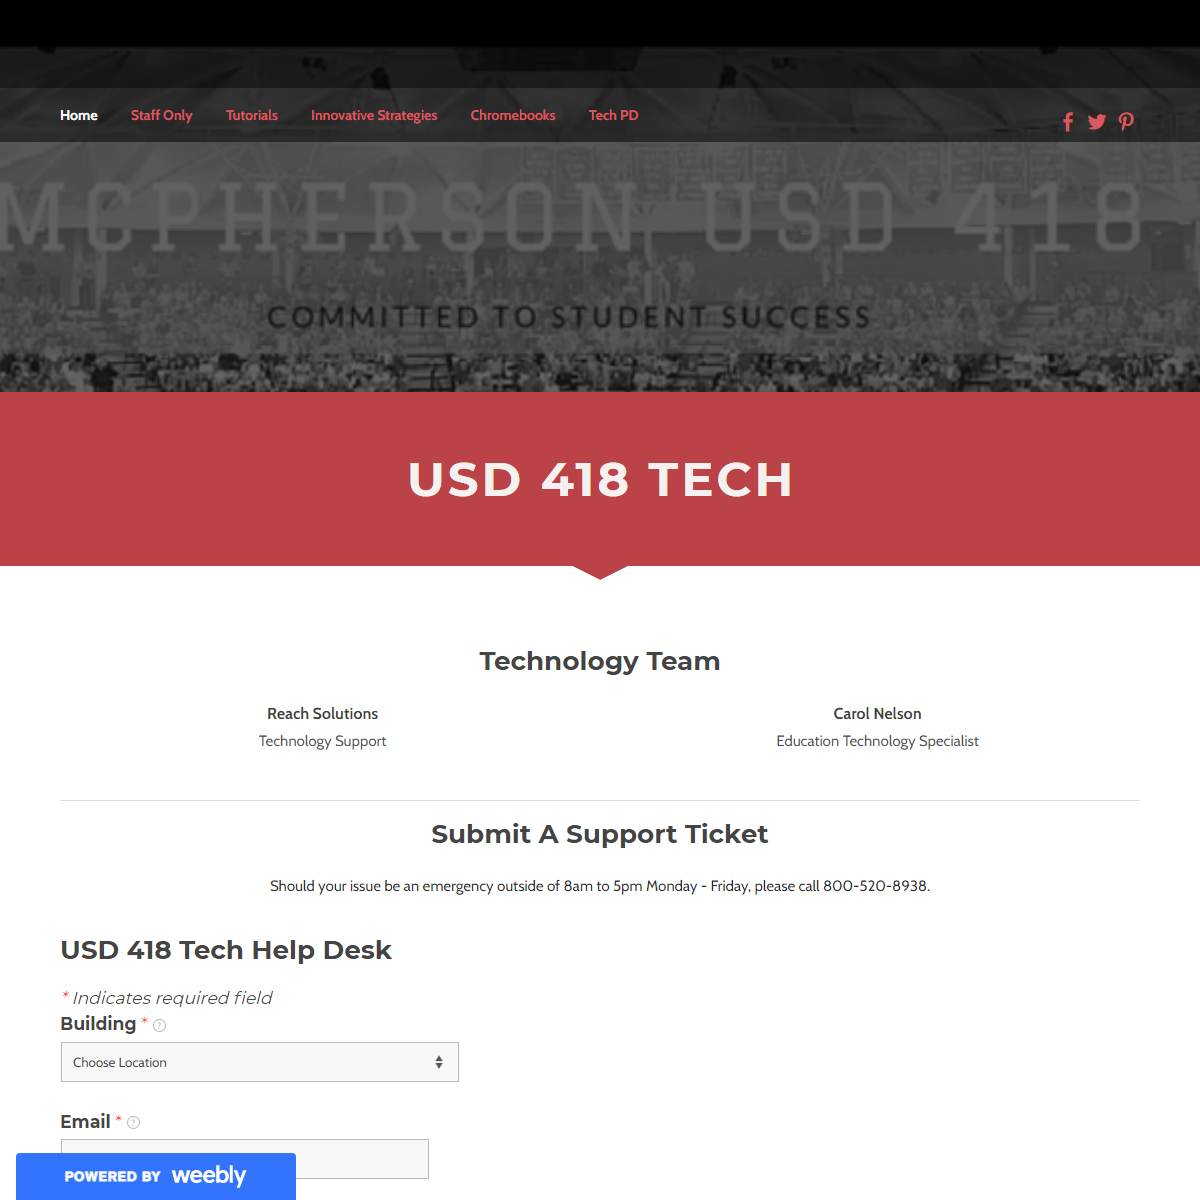 A complete backup of https://418tech.weebly.com/